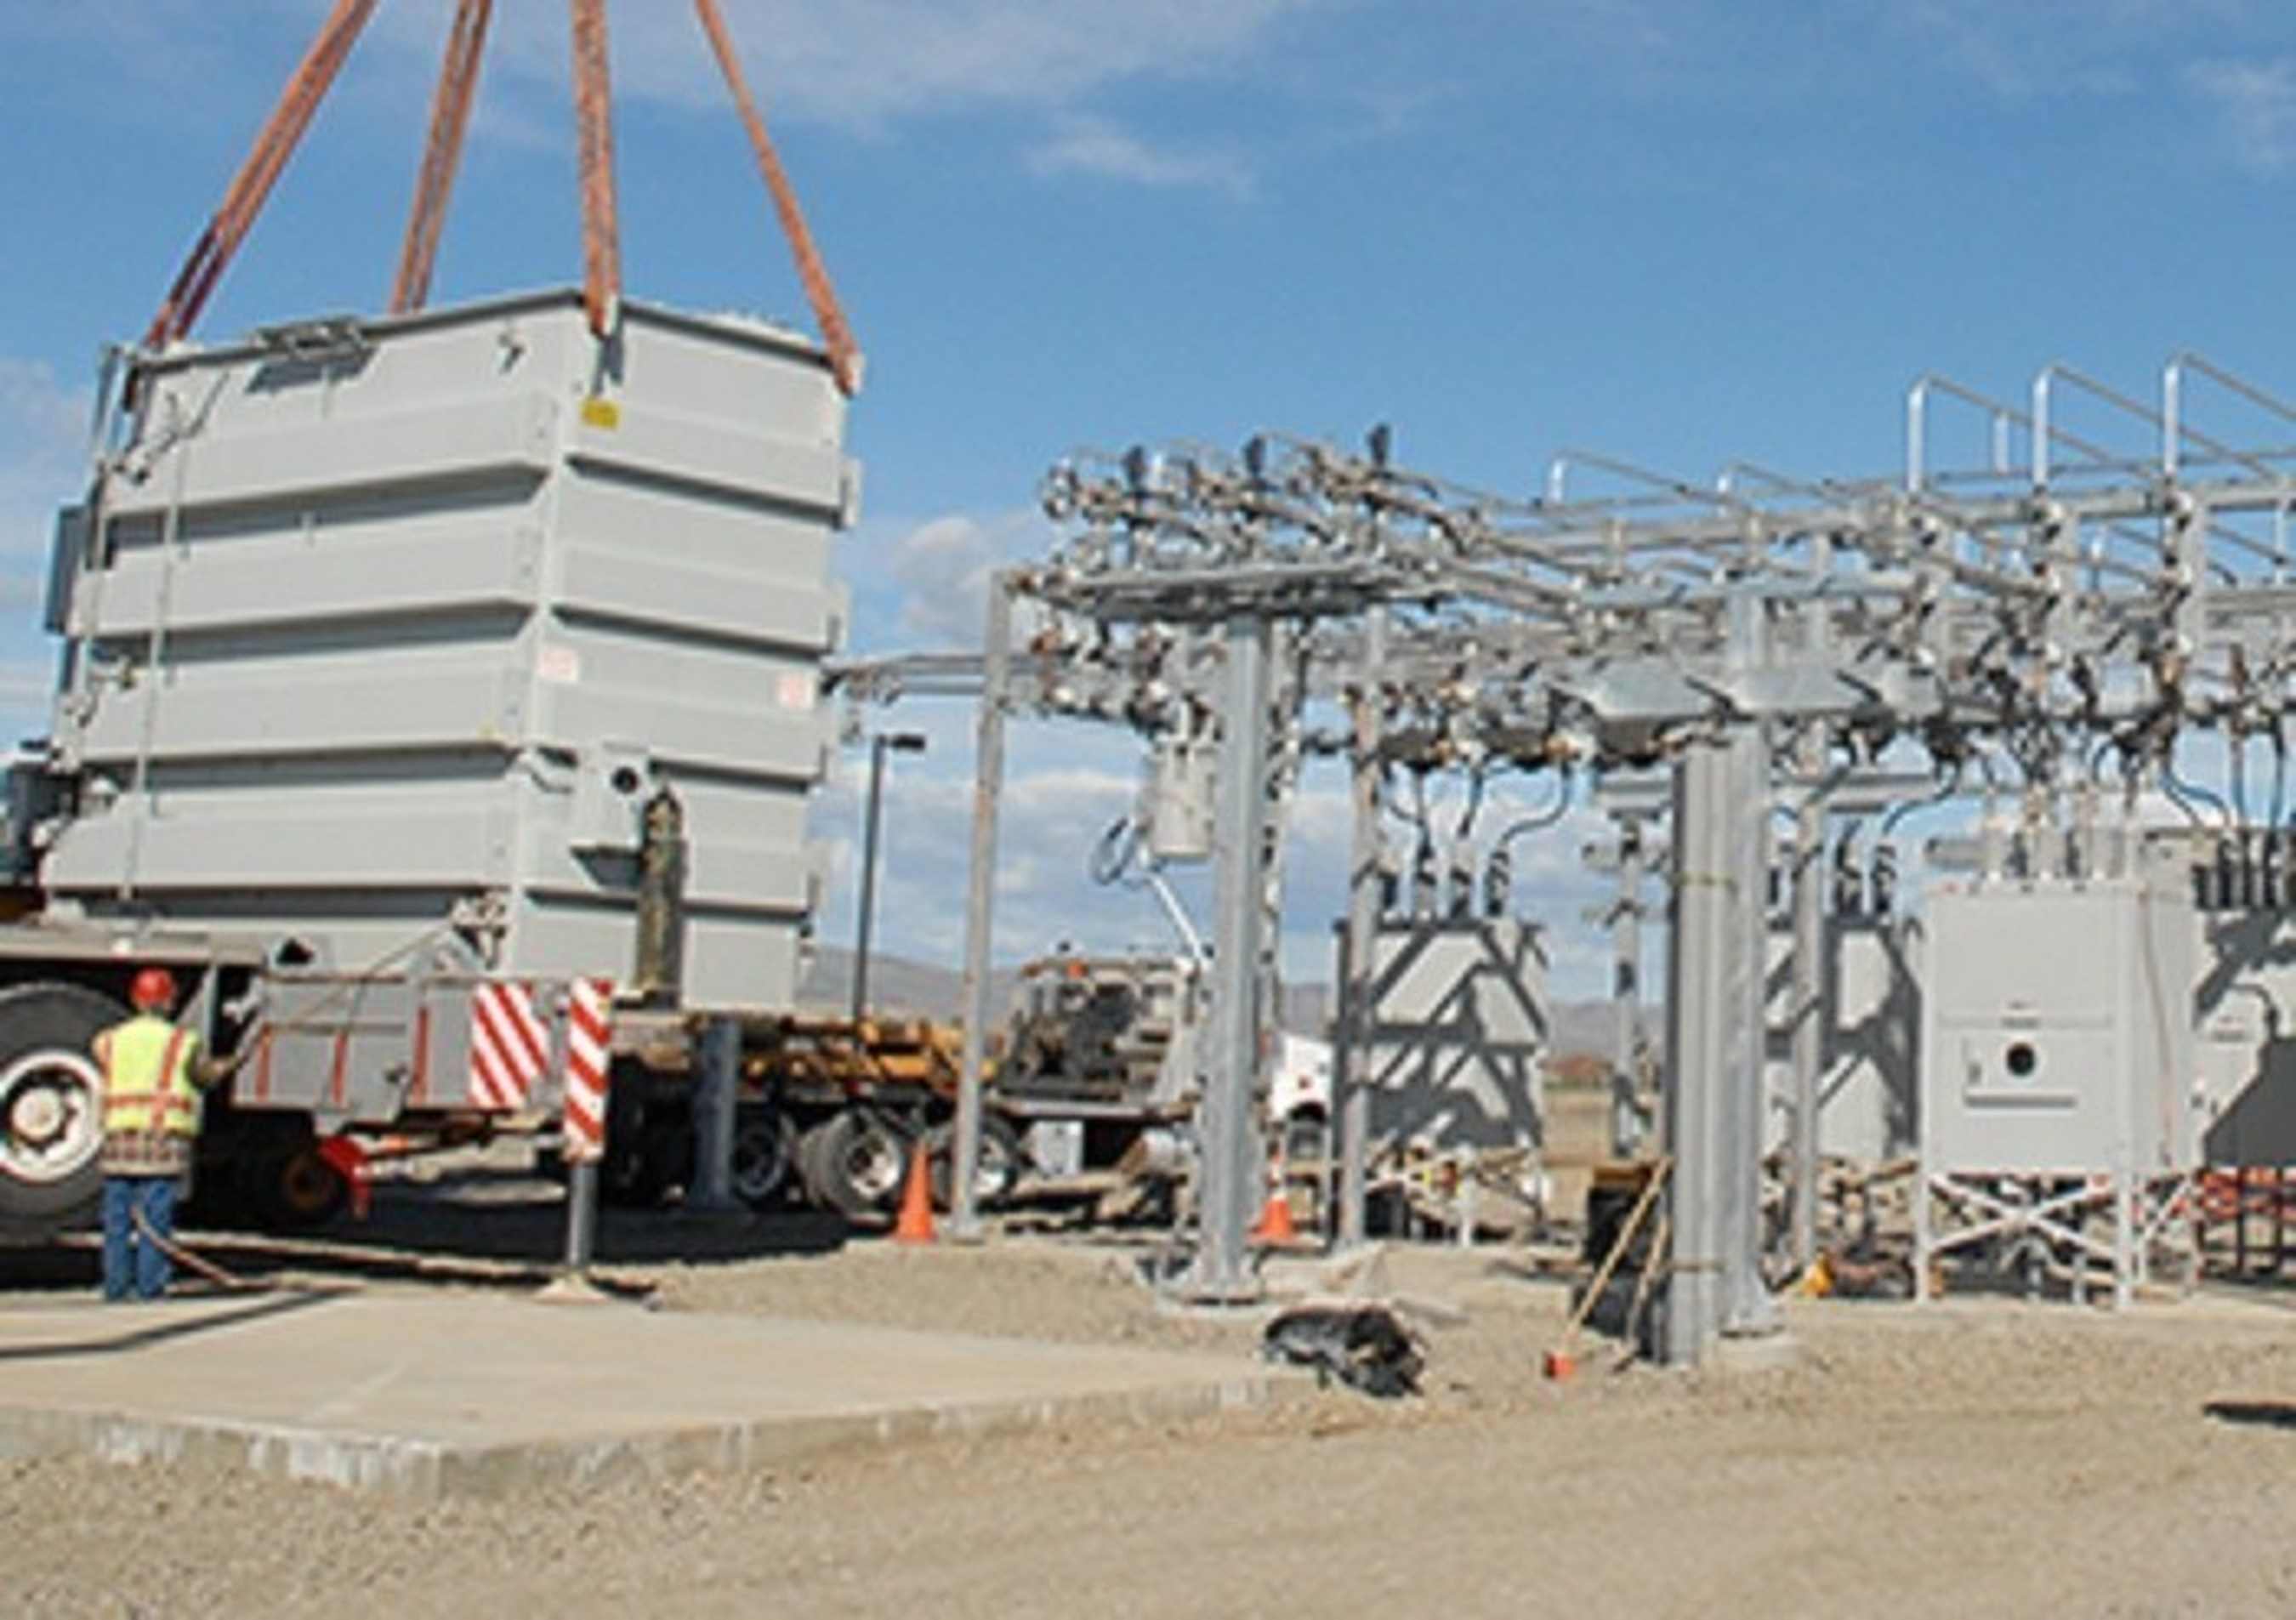 Grant County PUD Electrical Power Substation in the Port of Quincy